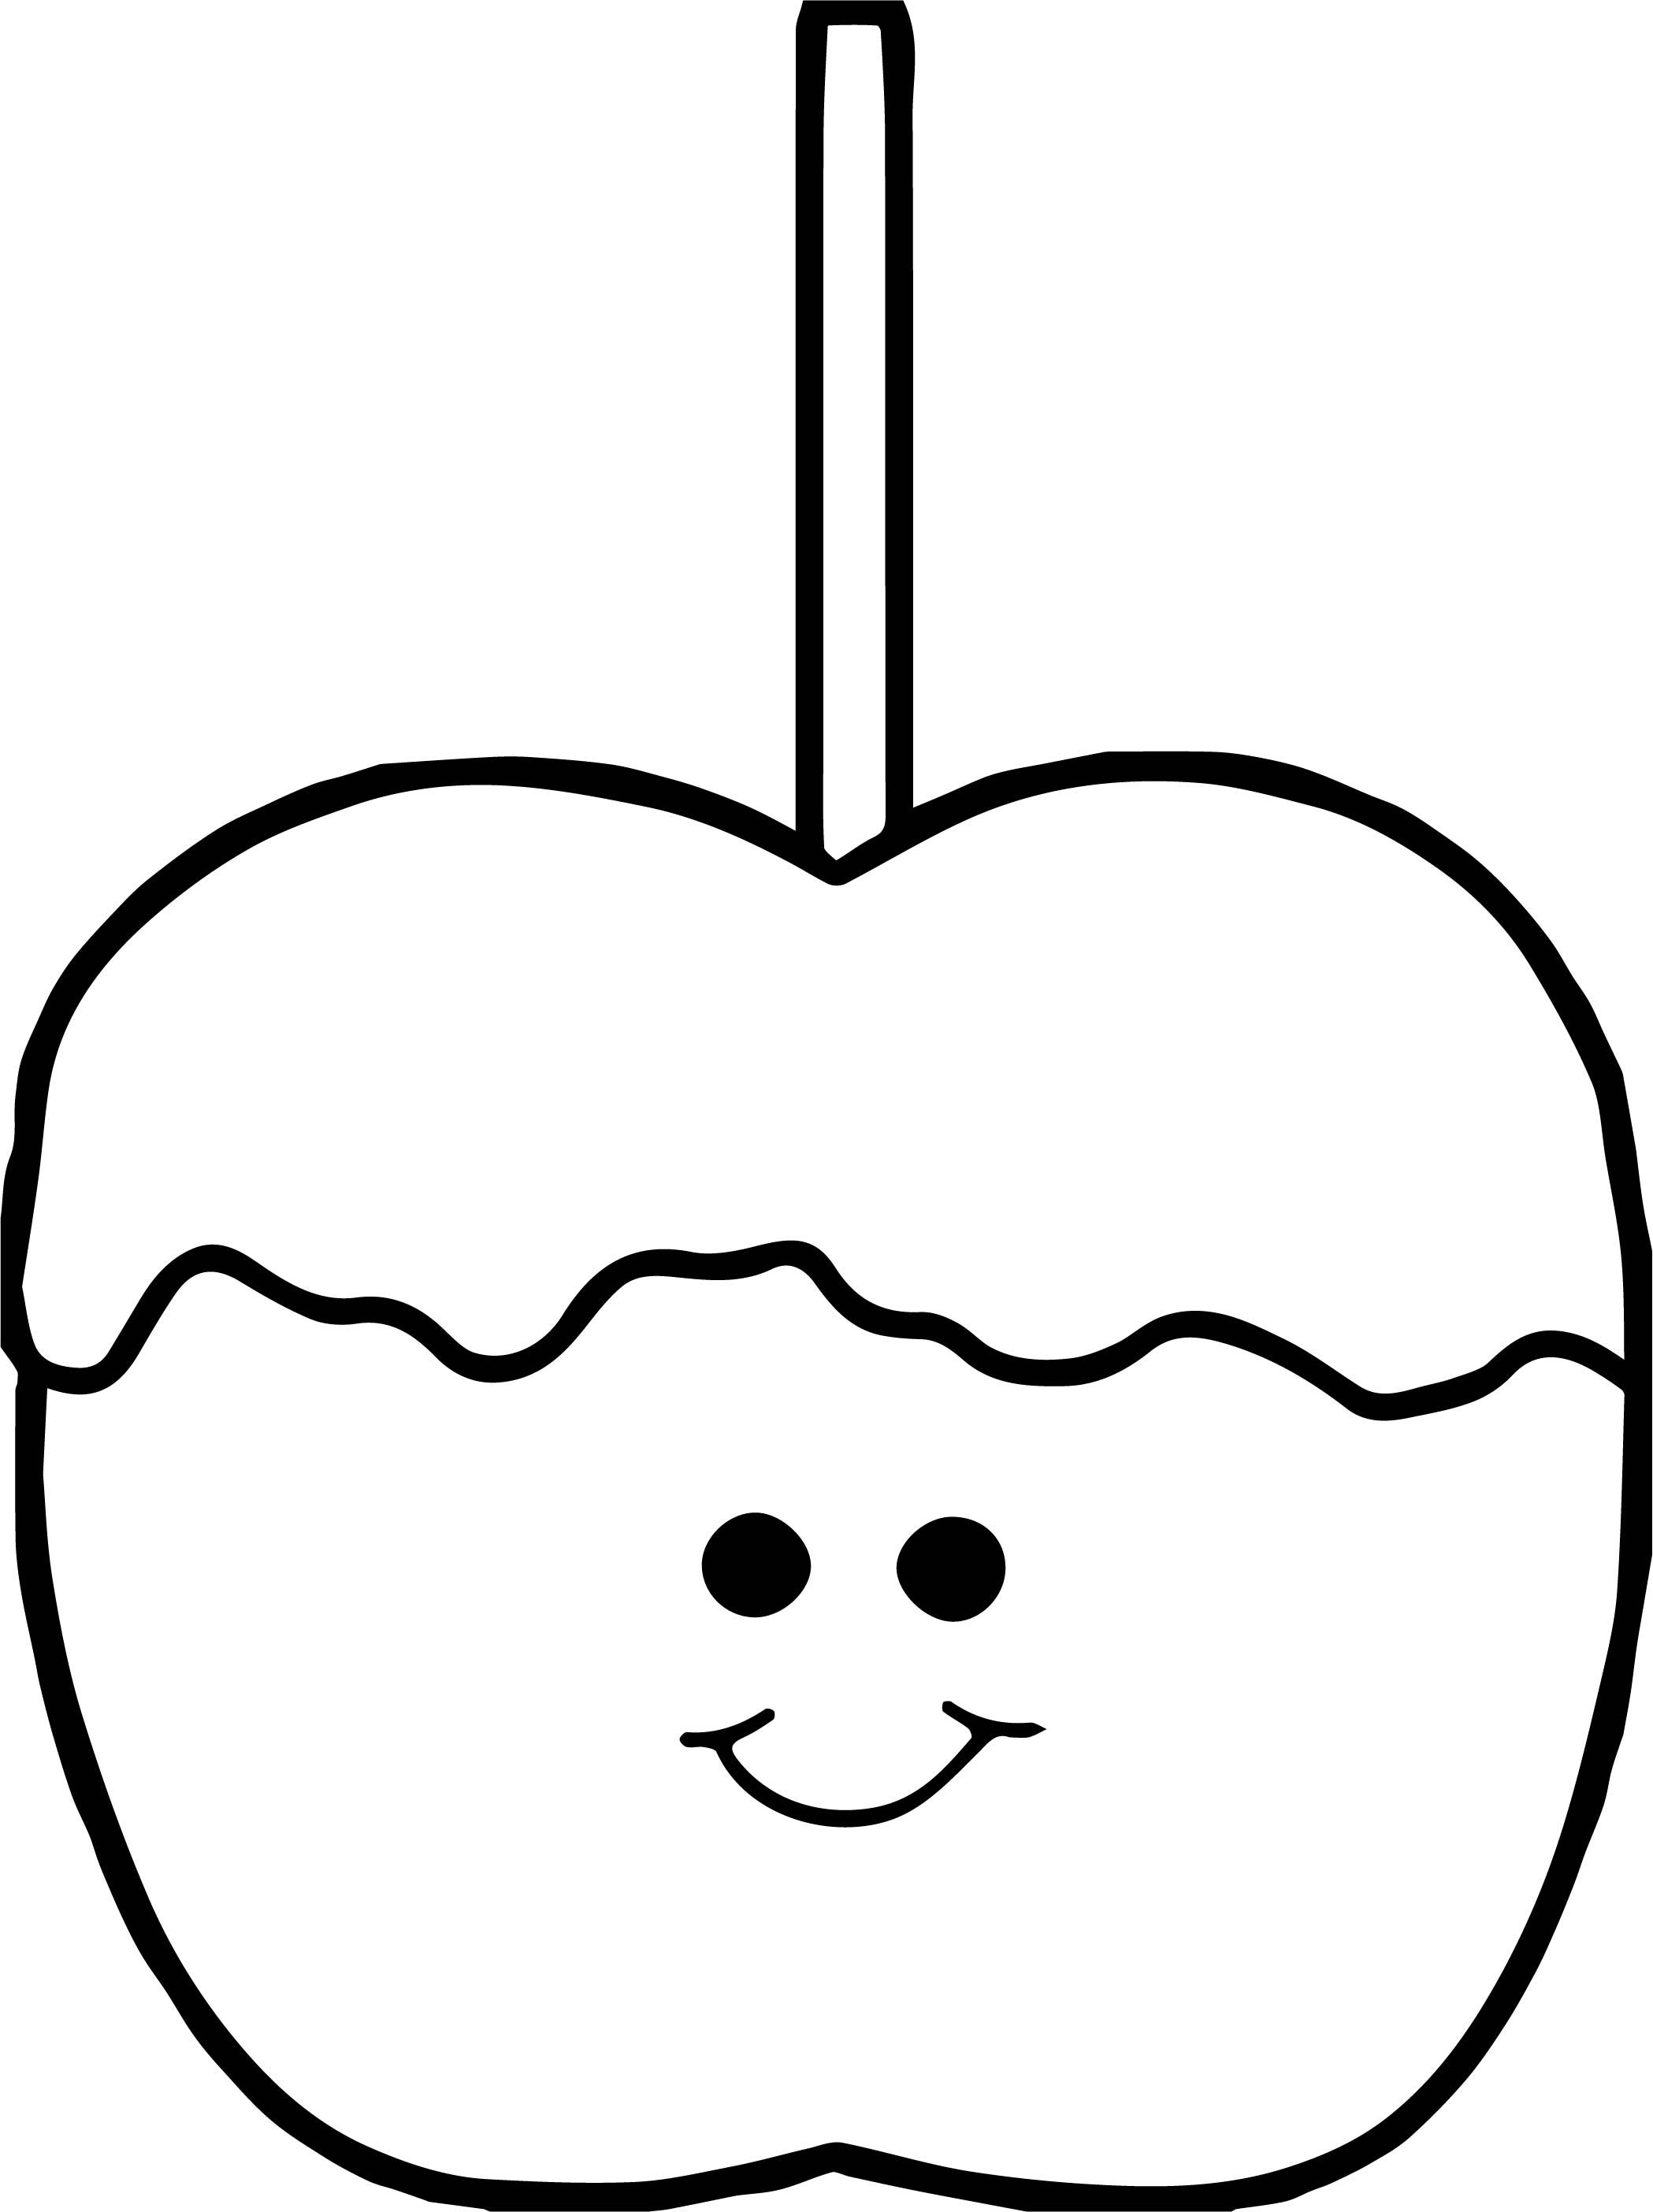 Awesome Cute Caramel Apple Coloring Page Apple Coloring Pages Fruit Coloring Pages Candy Coloring Pages